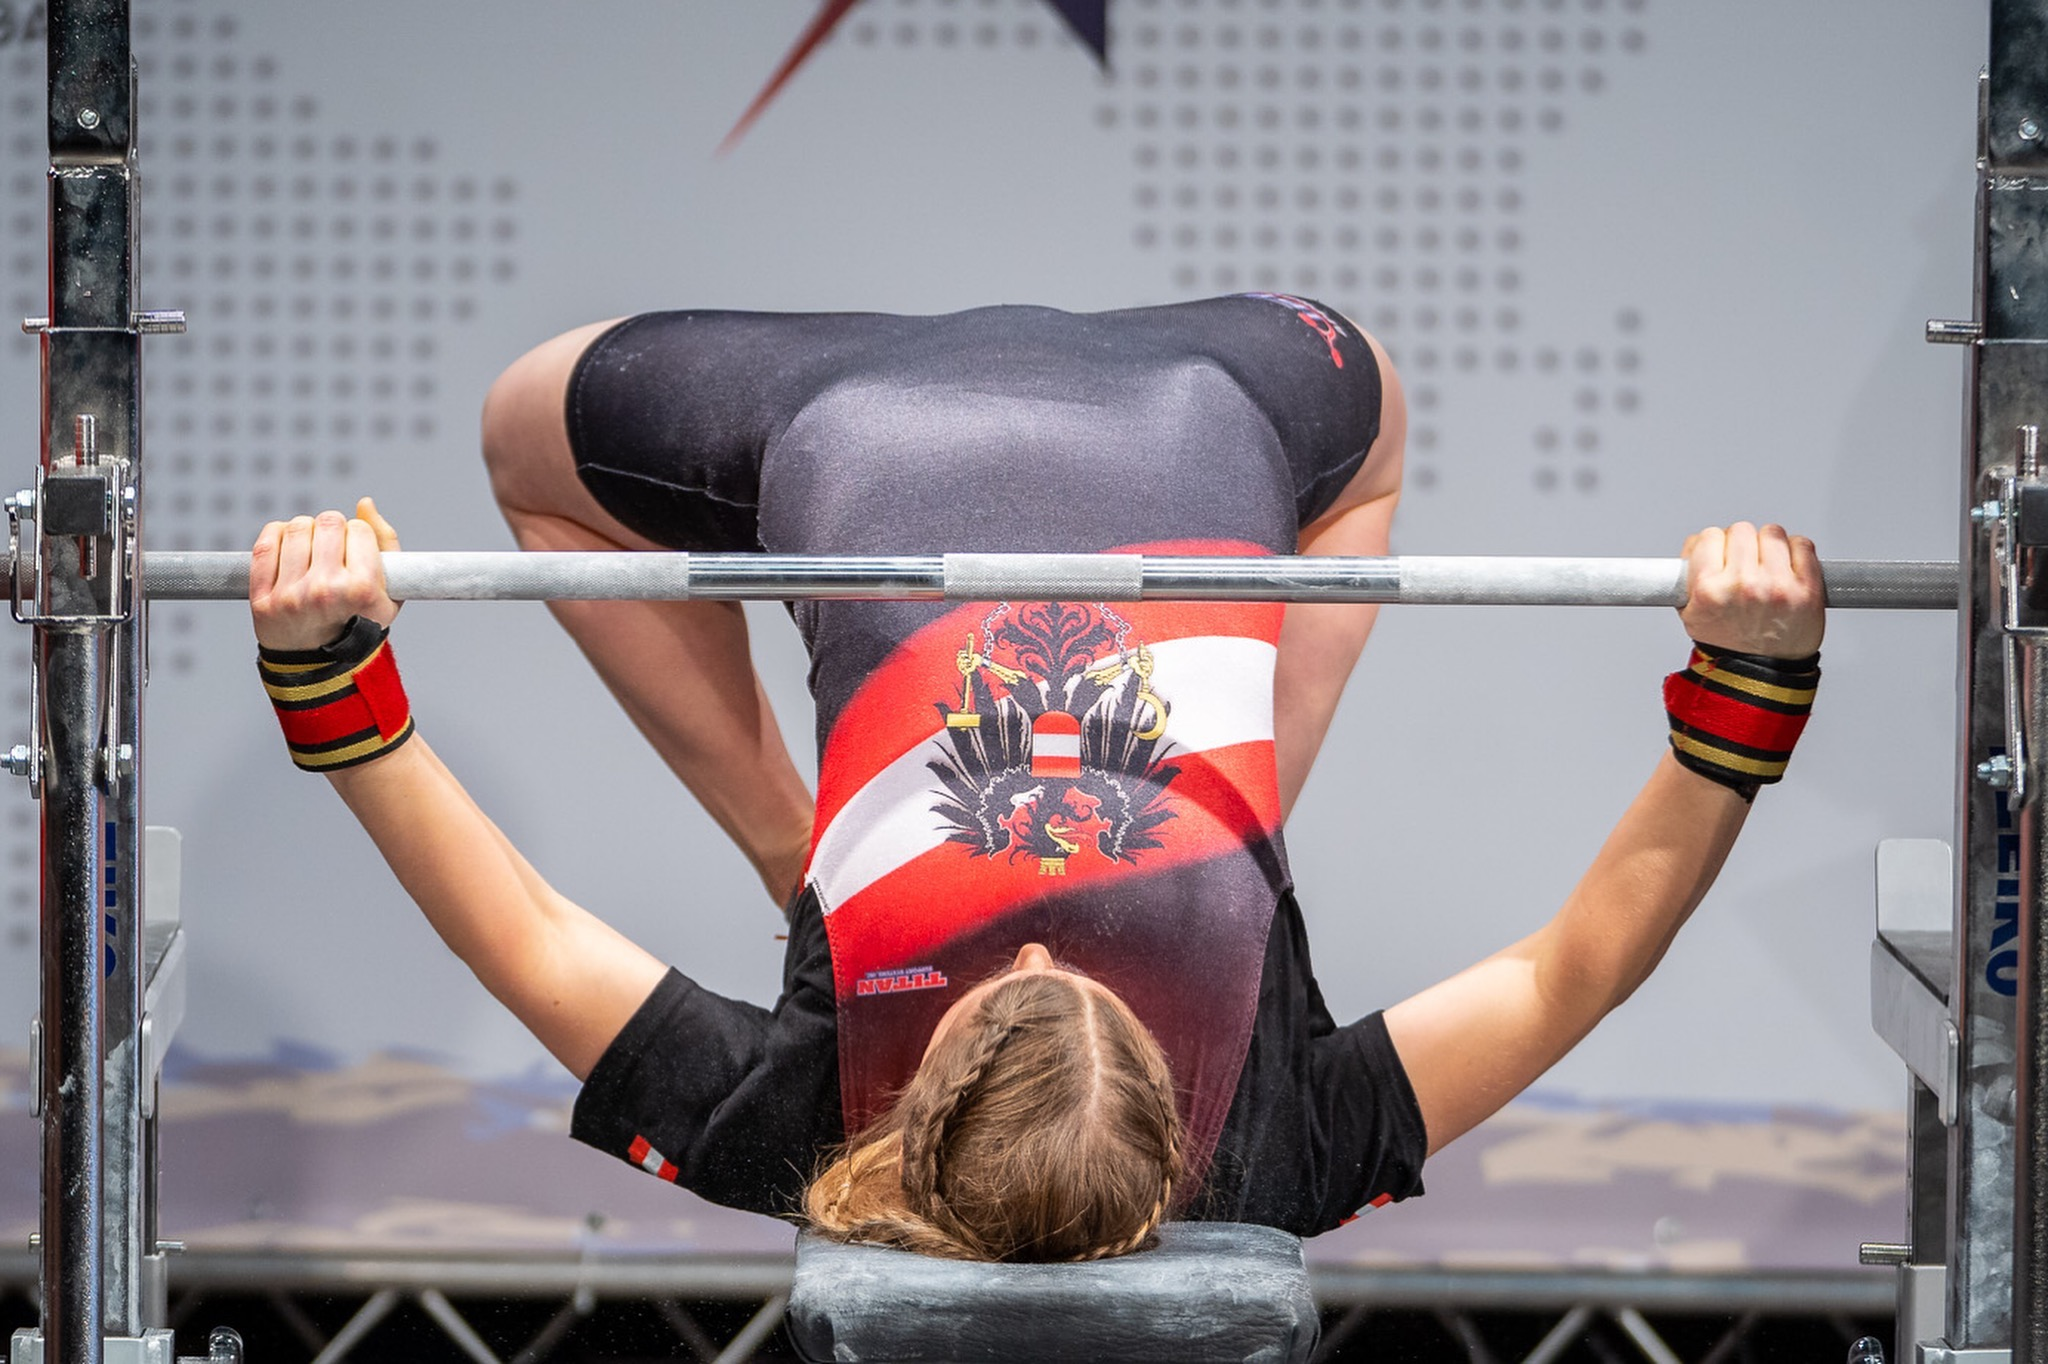 Austrian Bench Press Champion - Austrian Bench only Nationals 2019, Bärnchbach - Styria